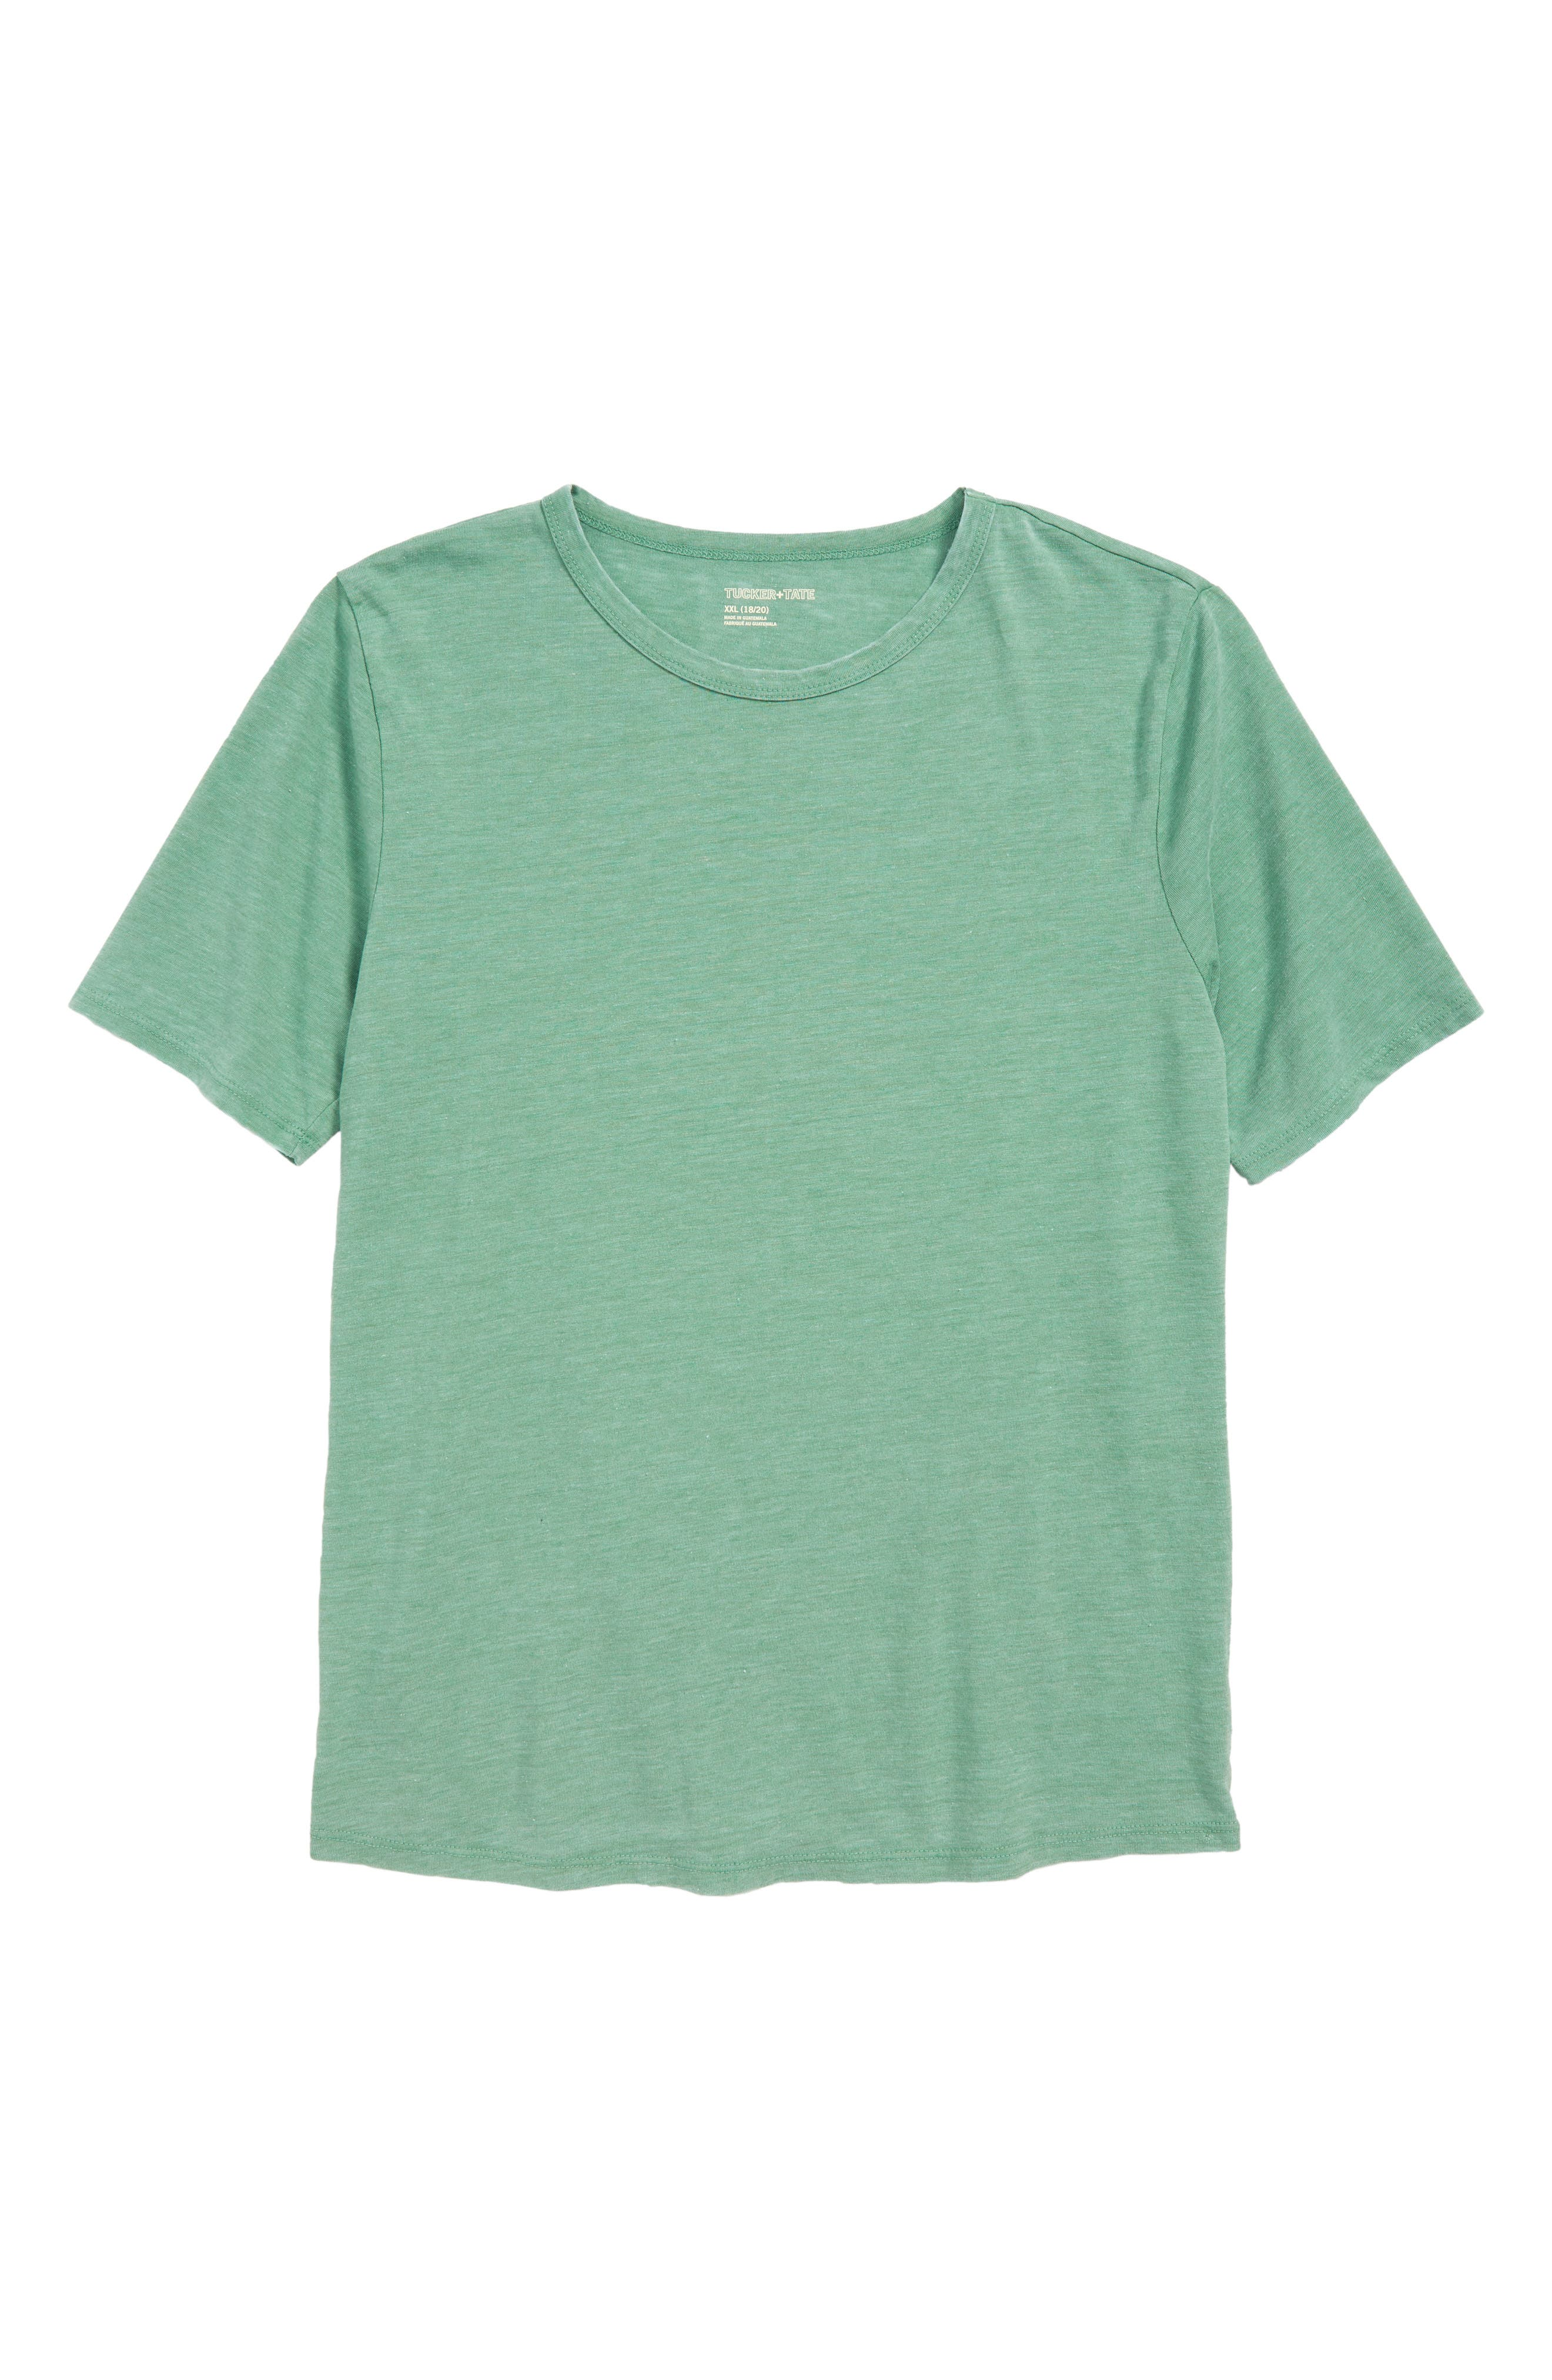 All Day Every Day T-Shirt, Main, color, 310